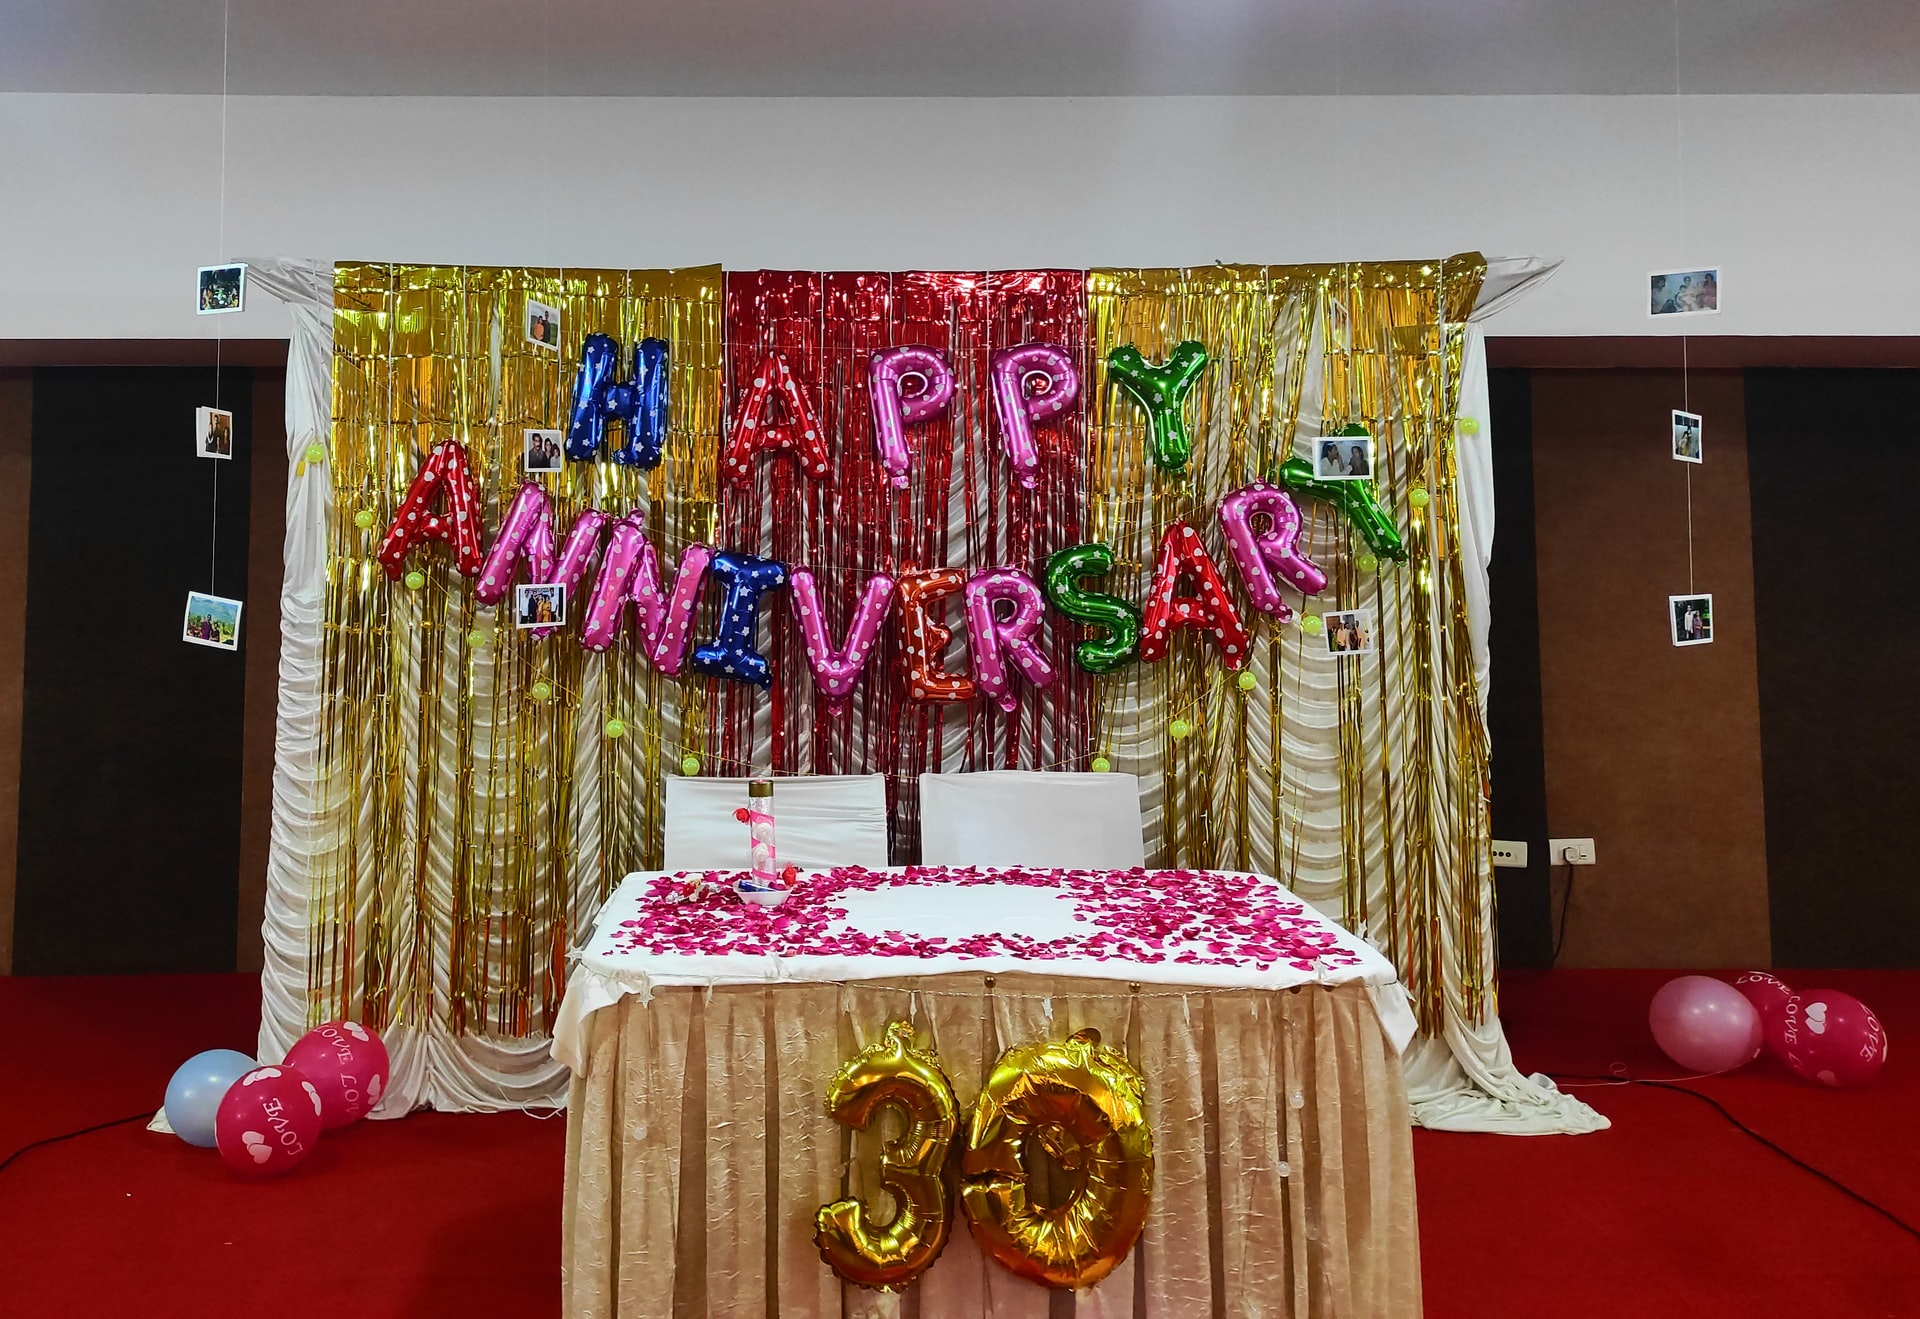 jacob antony Ns mp1MTsI8 unsplash - 31 Best Happy Anniversary Wishes for Mom from Daughter